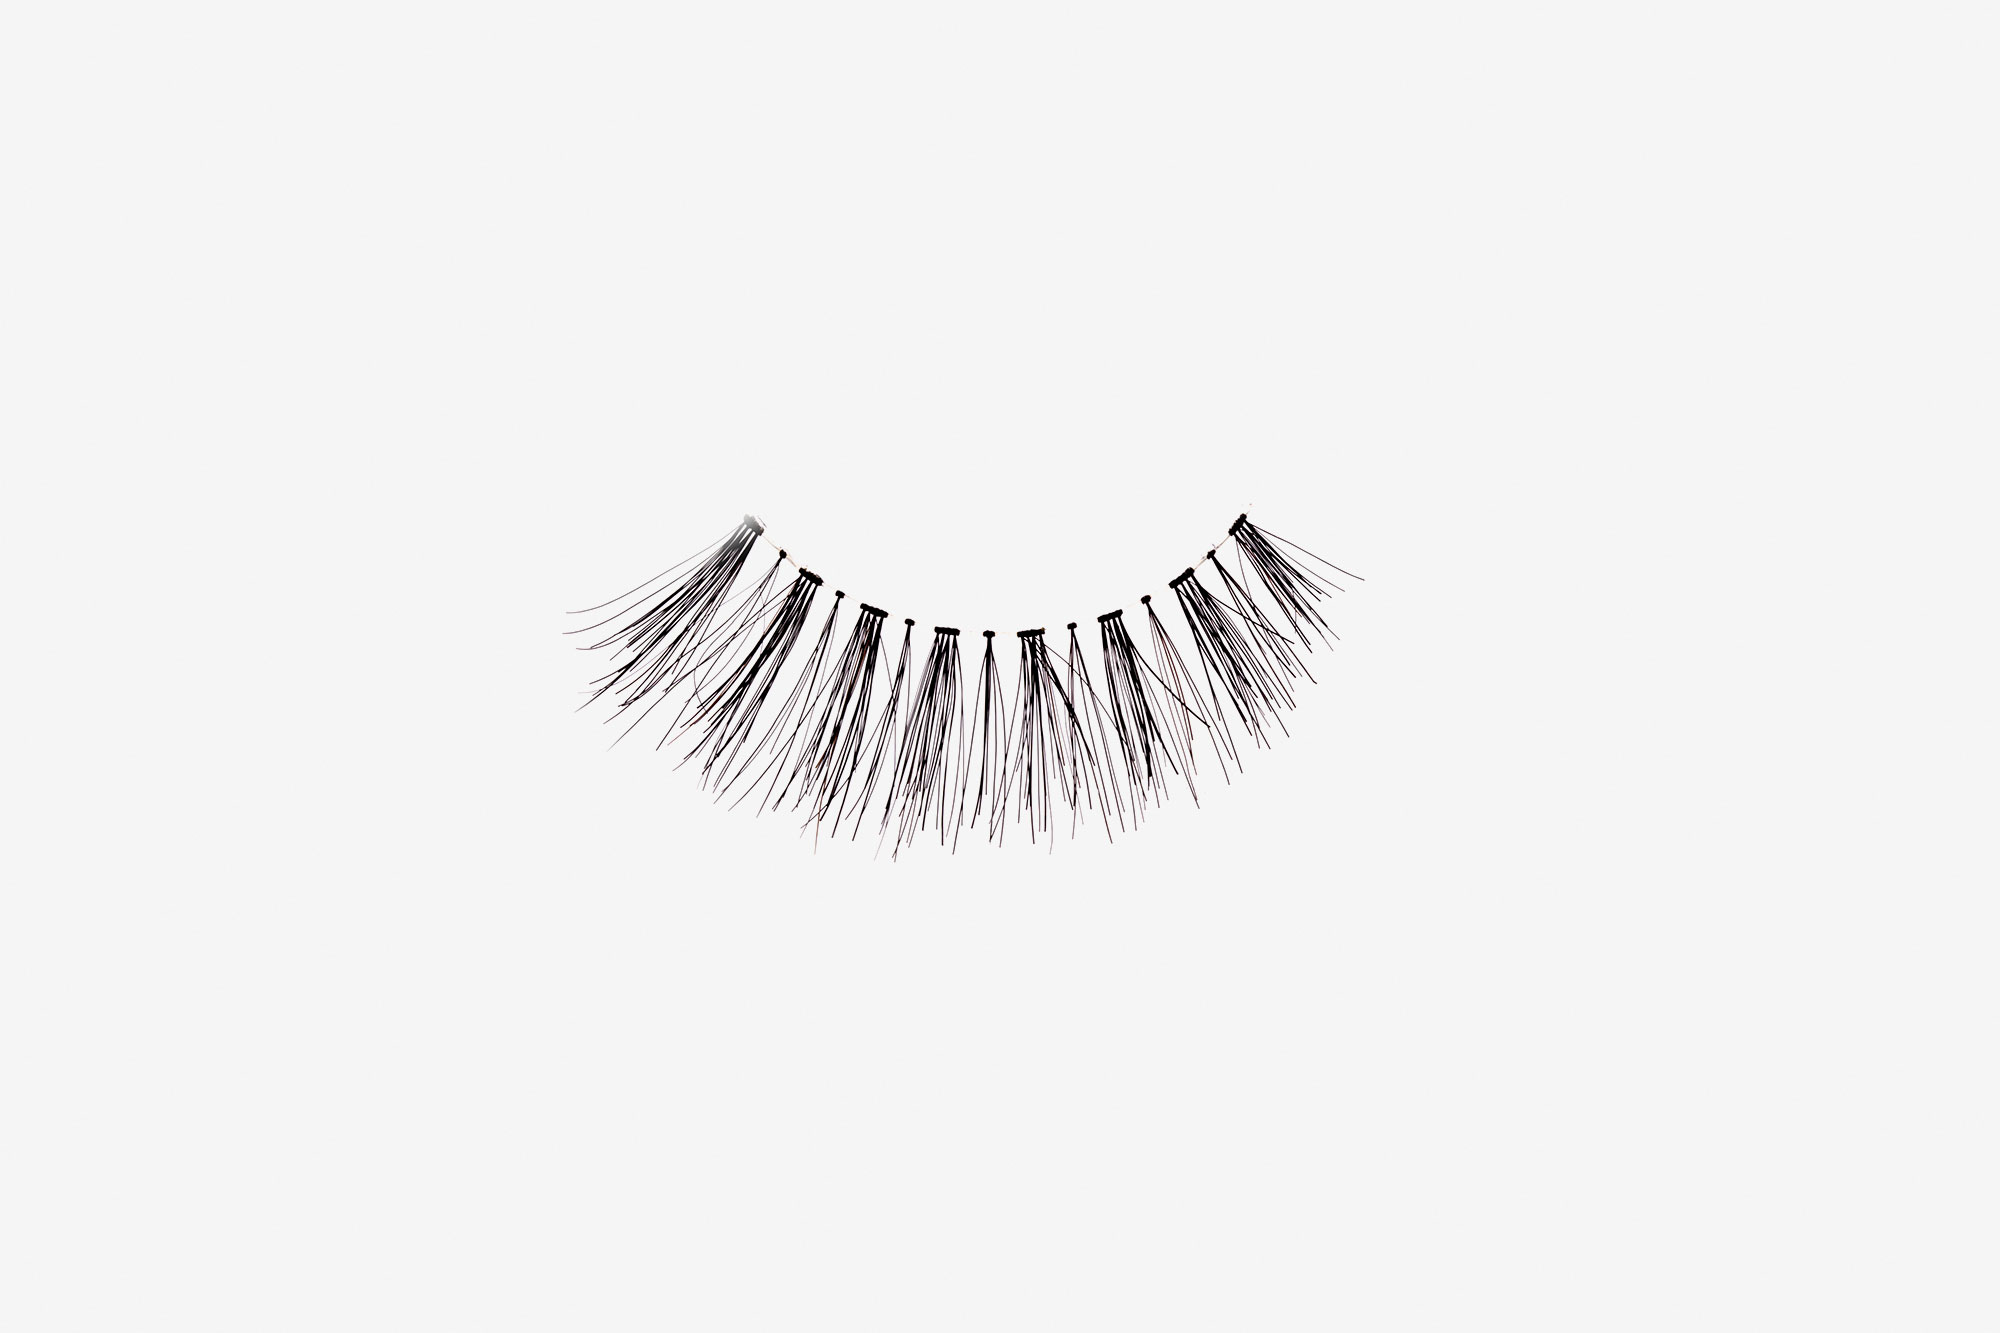 Daisy False Eyelashes, single false lash on grey background